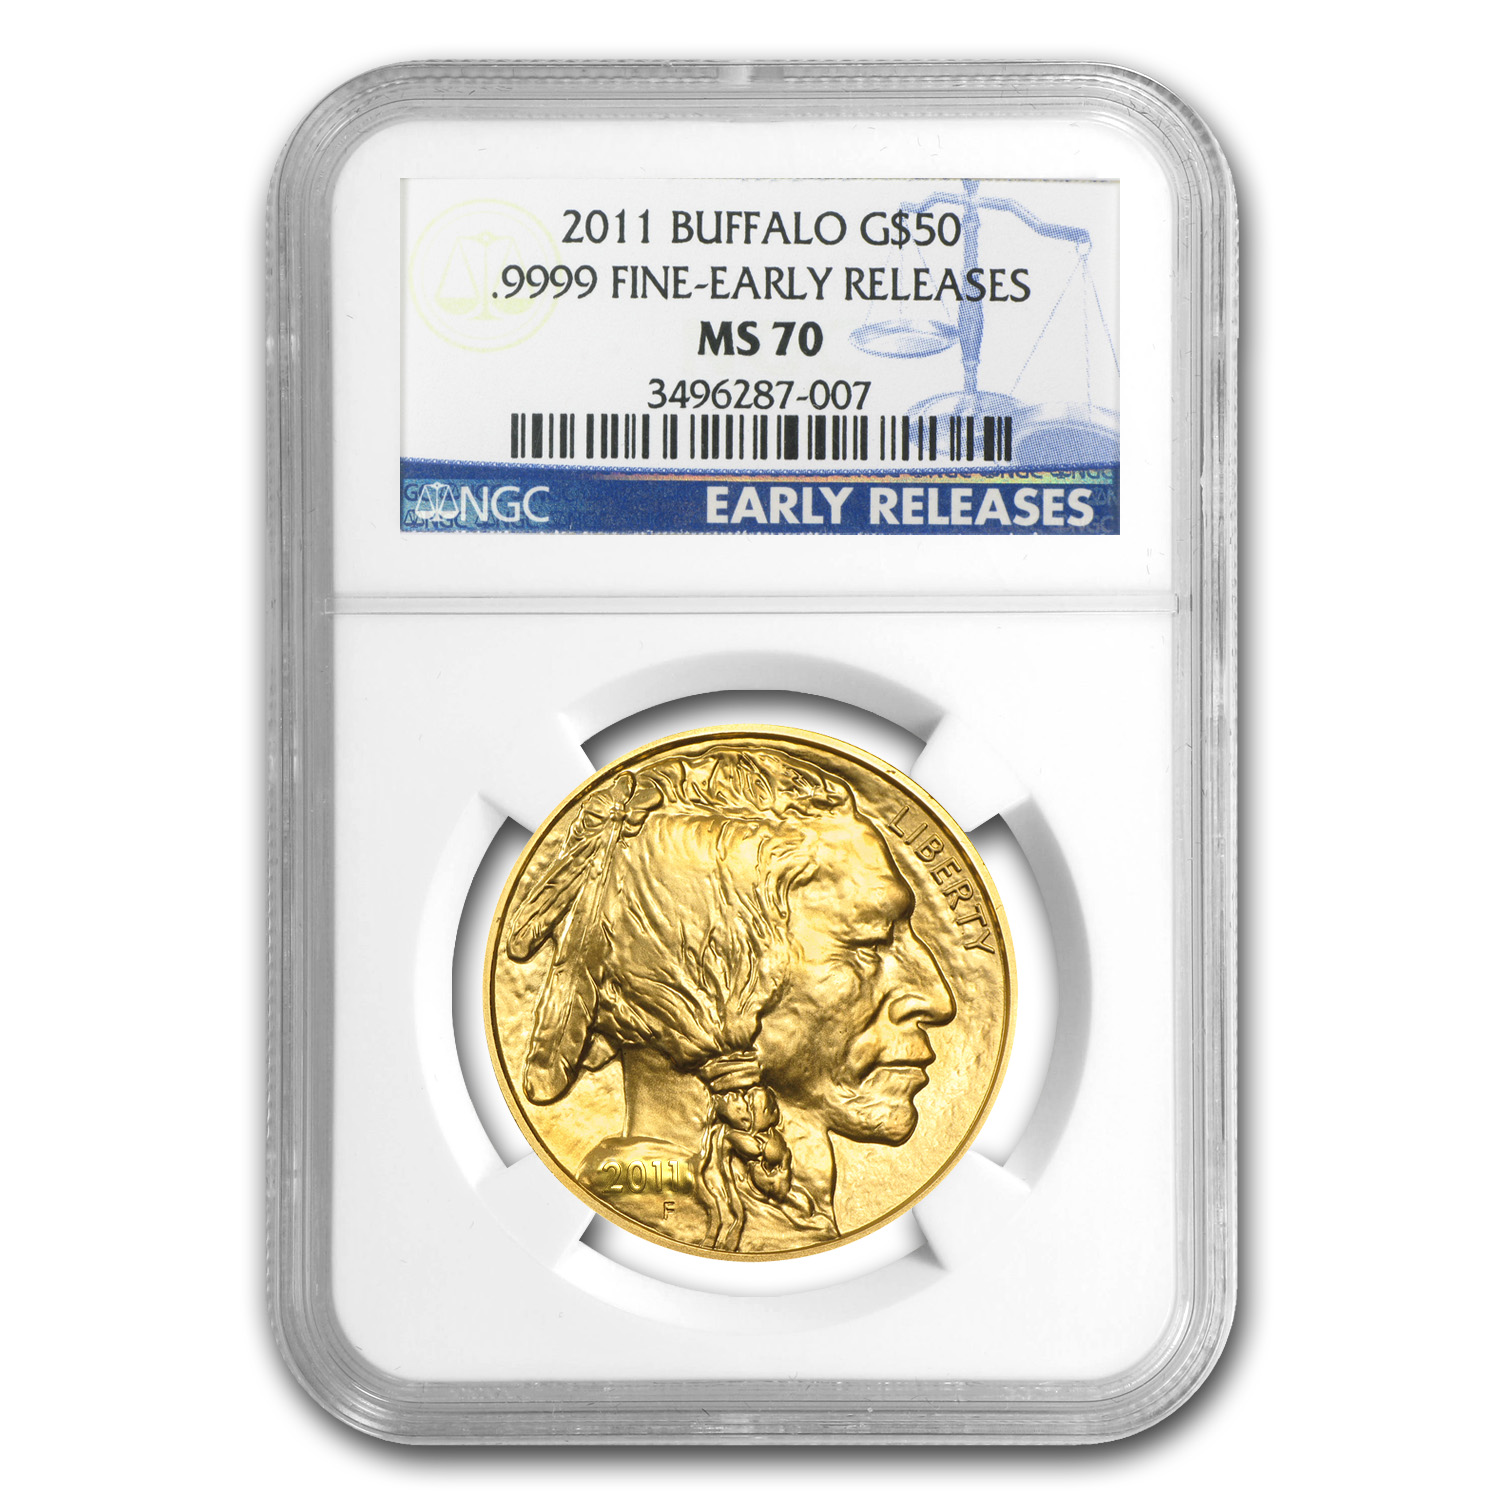 2006-2014 1 oz Gold Buffalo MS-70 NGC 9-Coin Set